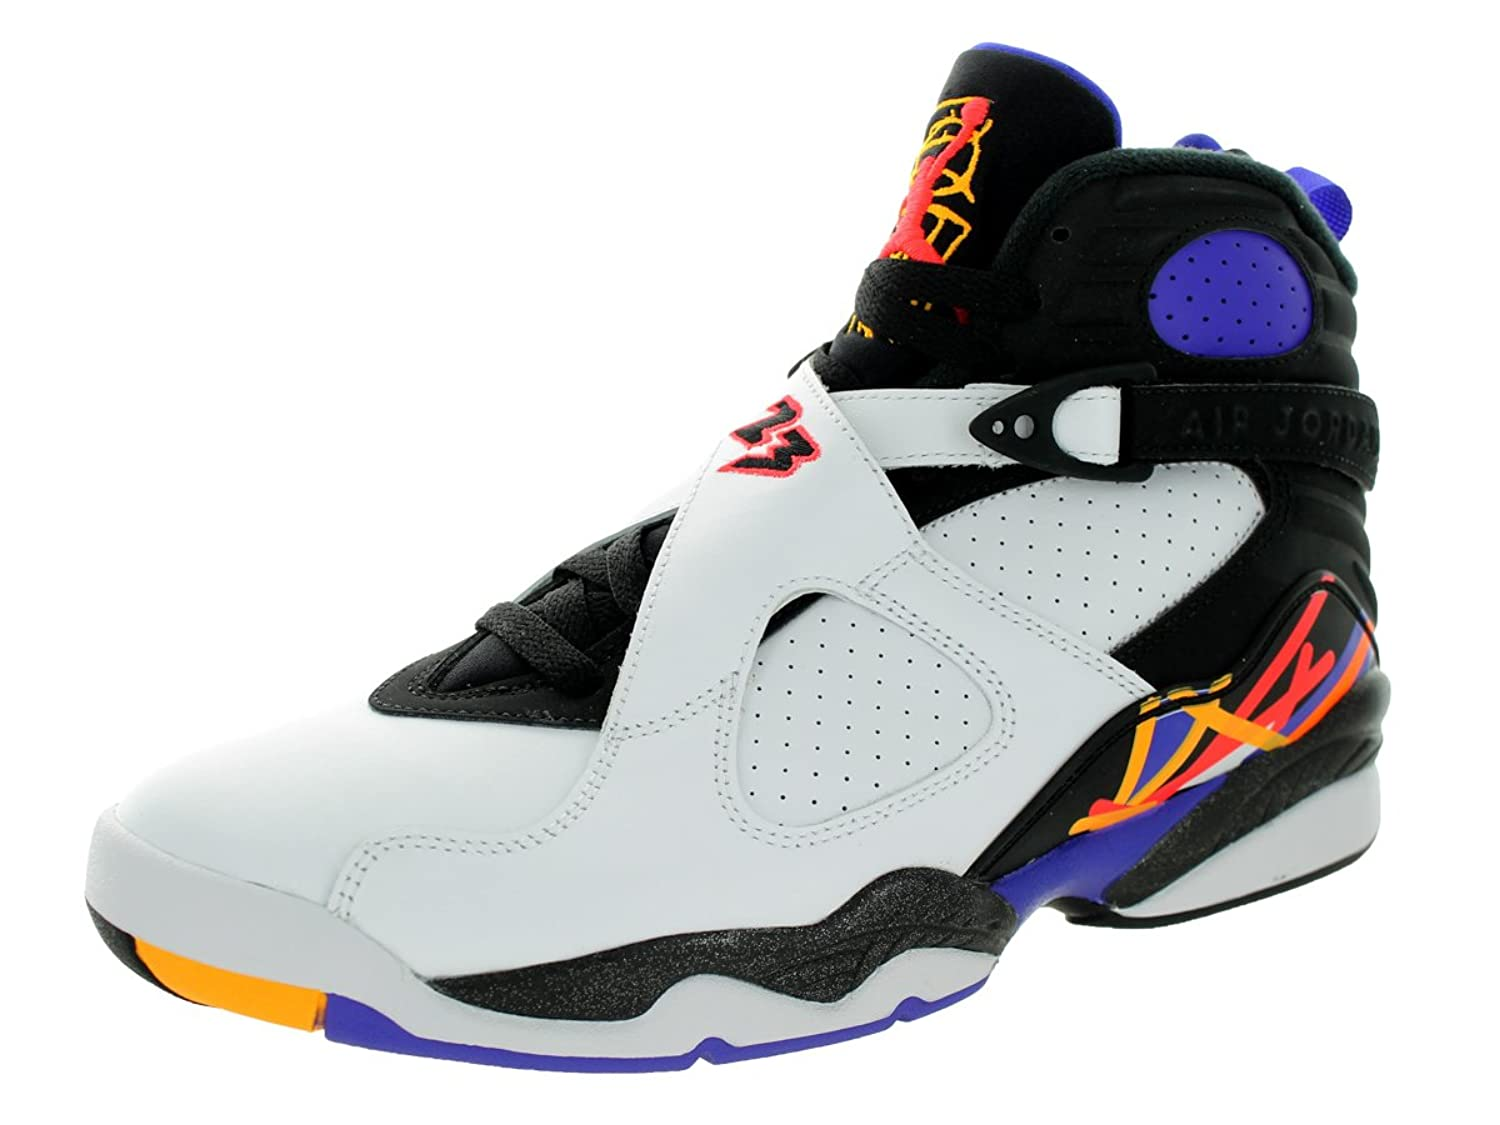 nike jordan mens air jordan 8 retro basketball shoe